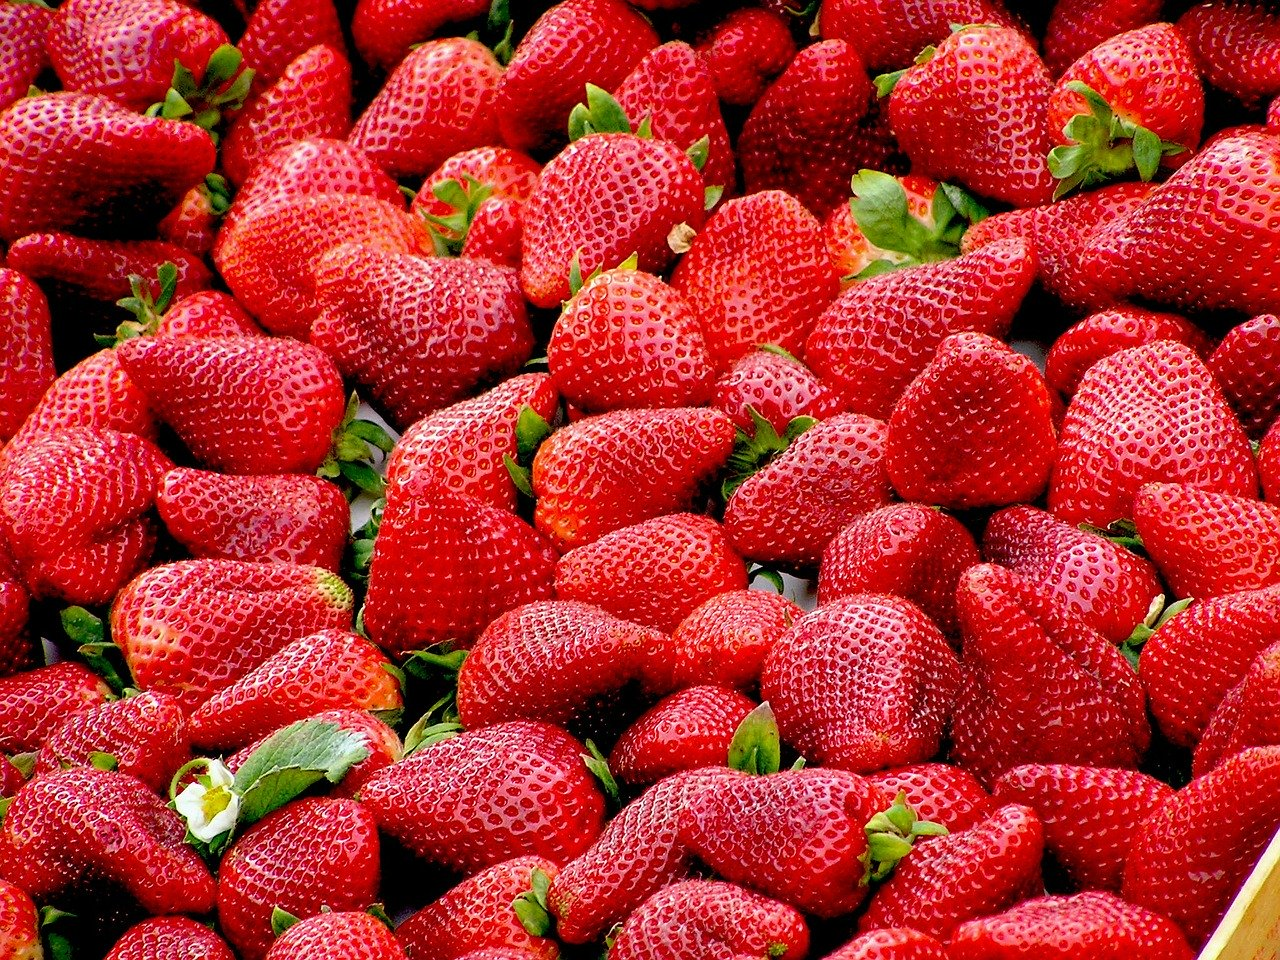 Manfaat strawberry: Pixabay